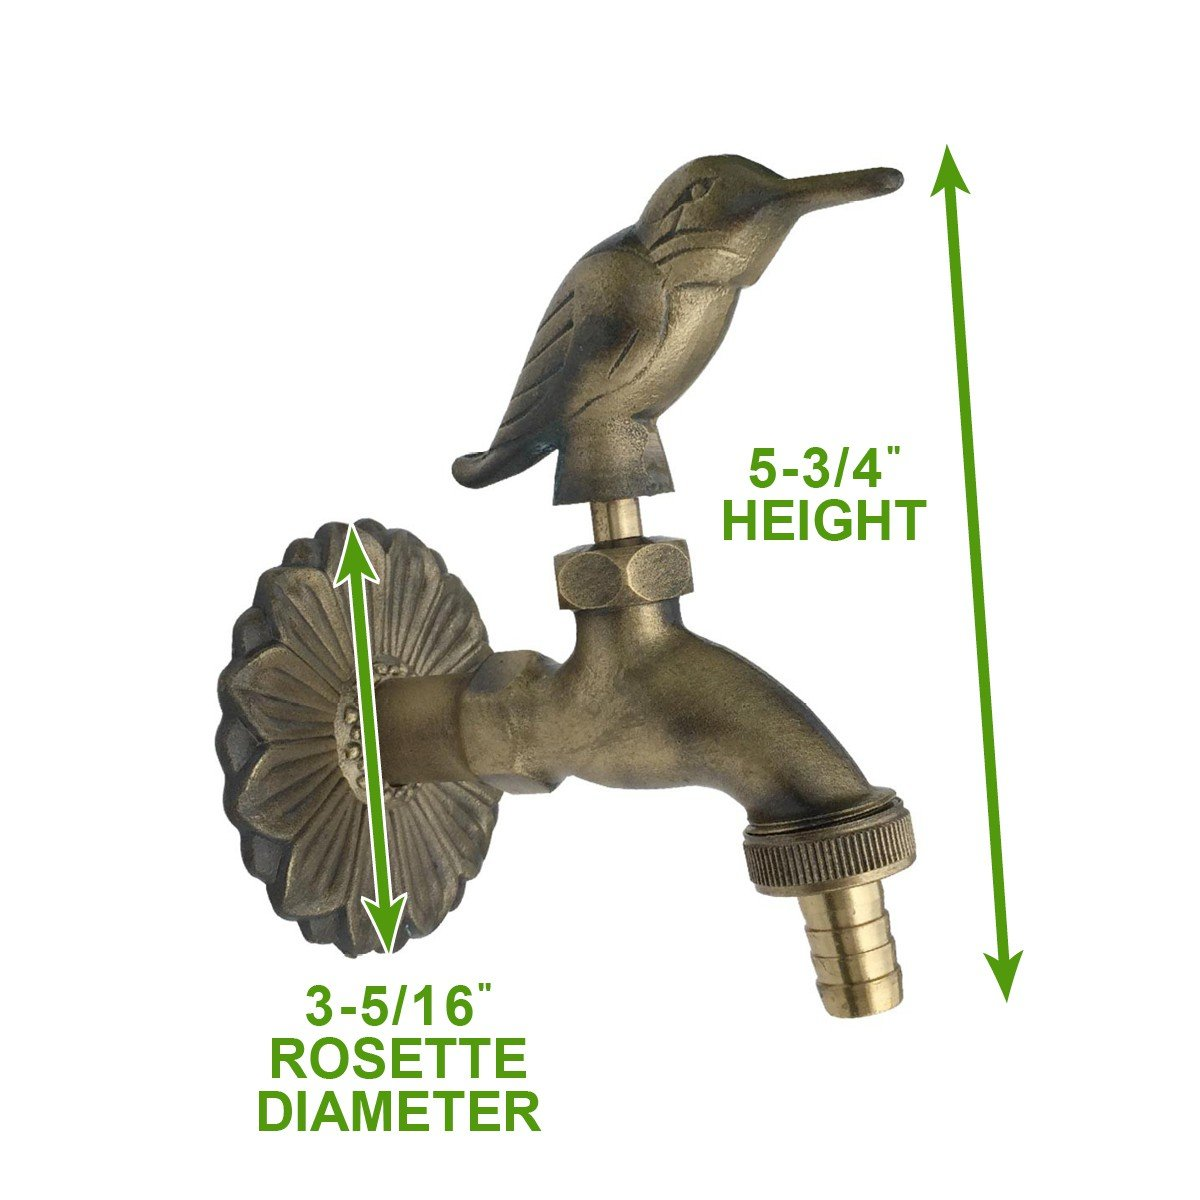 Outdoor Faucet Bird Spigot Garden Tap Antique Brass | Renovators Supply 2